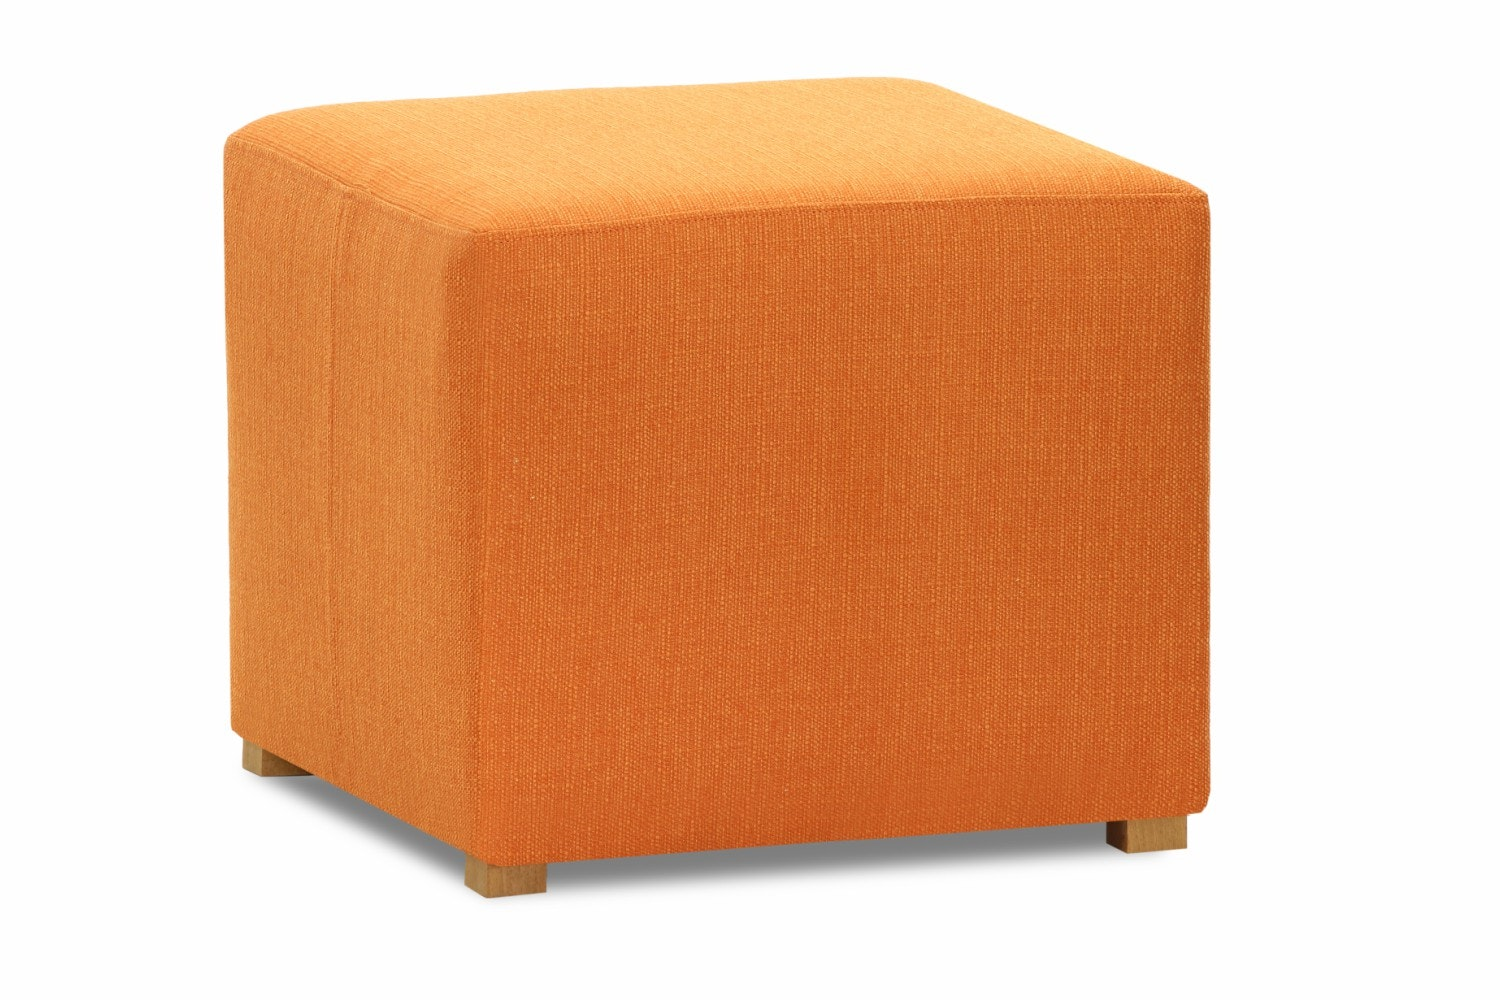 Pufa Bedroom Stool Cube | Portland Orange